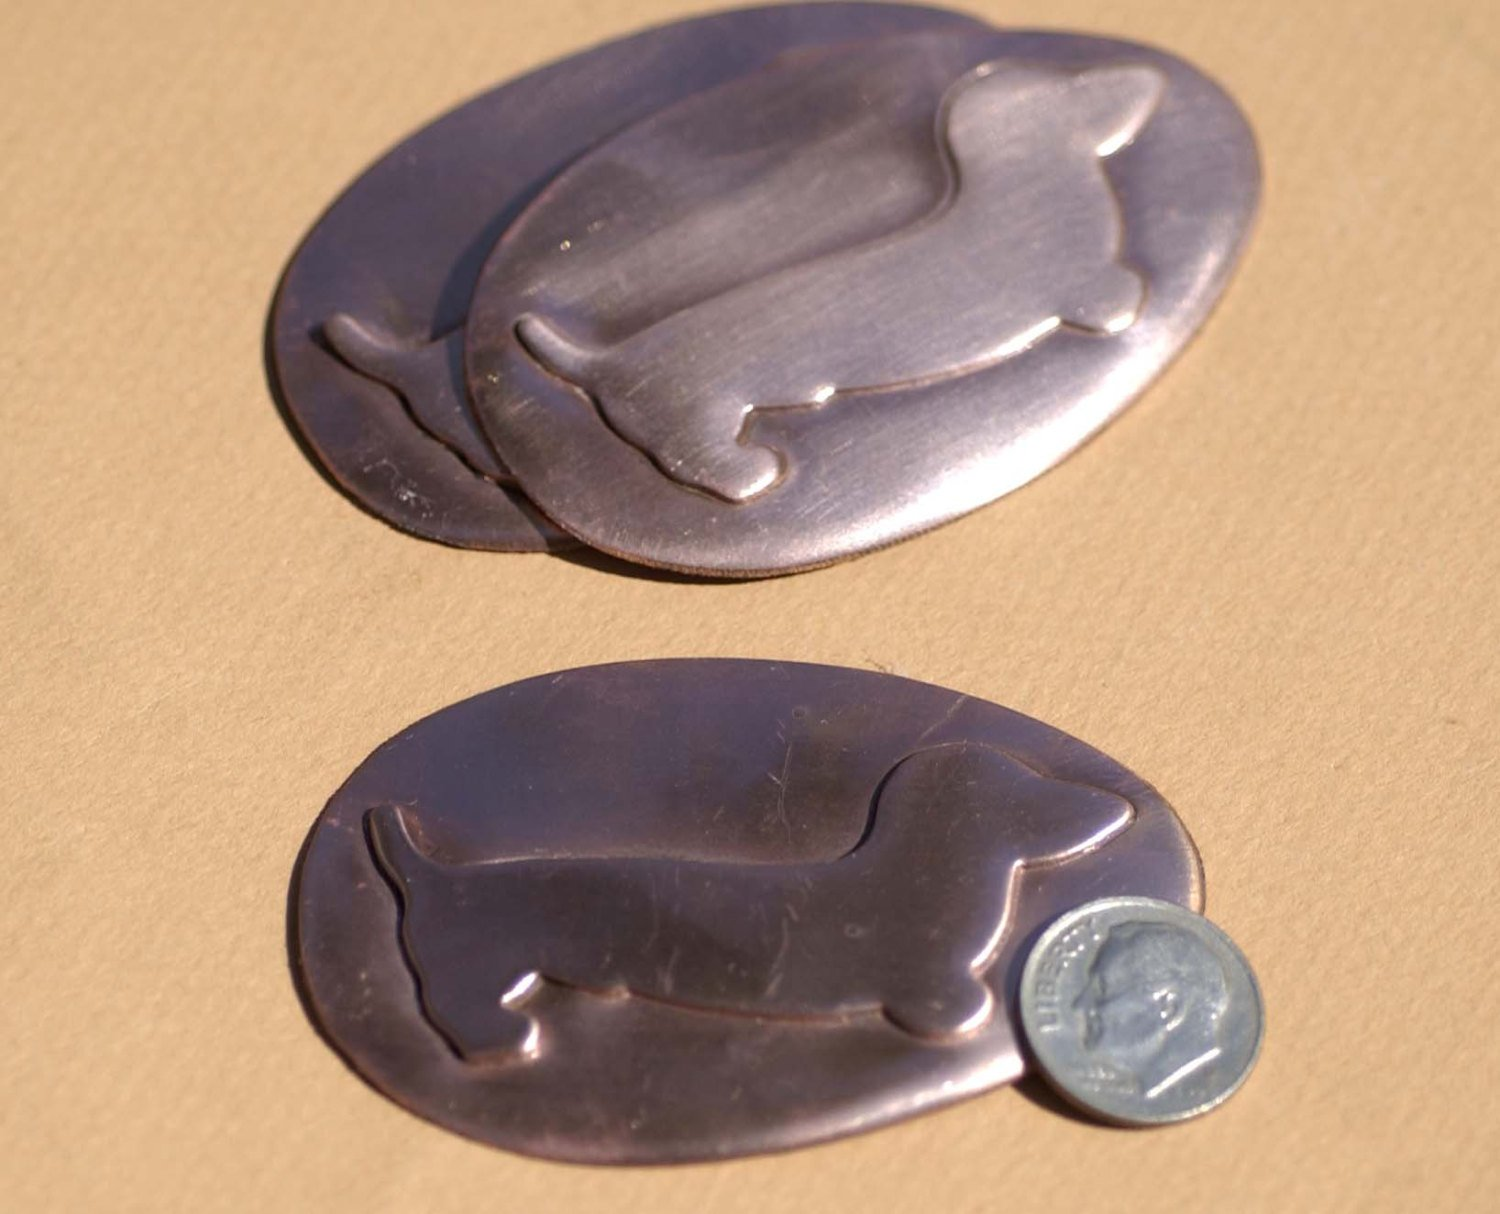 Embossed Weiner Dog on Big Oval Shaped Egg 64mm x 41mm Blanks Enameling Stamping Texturing